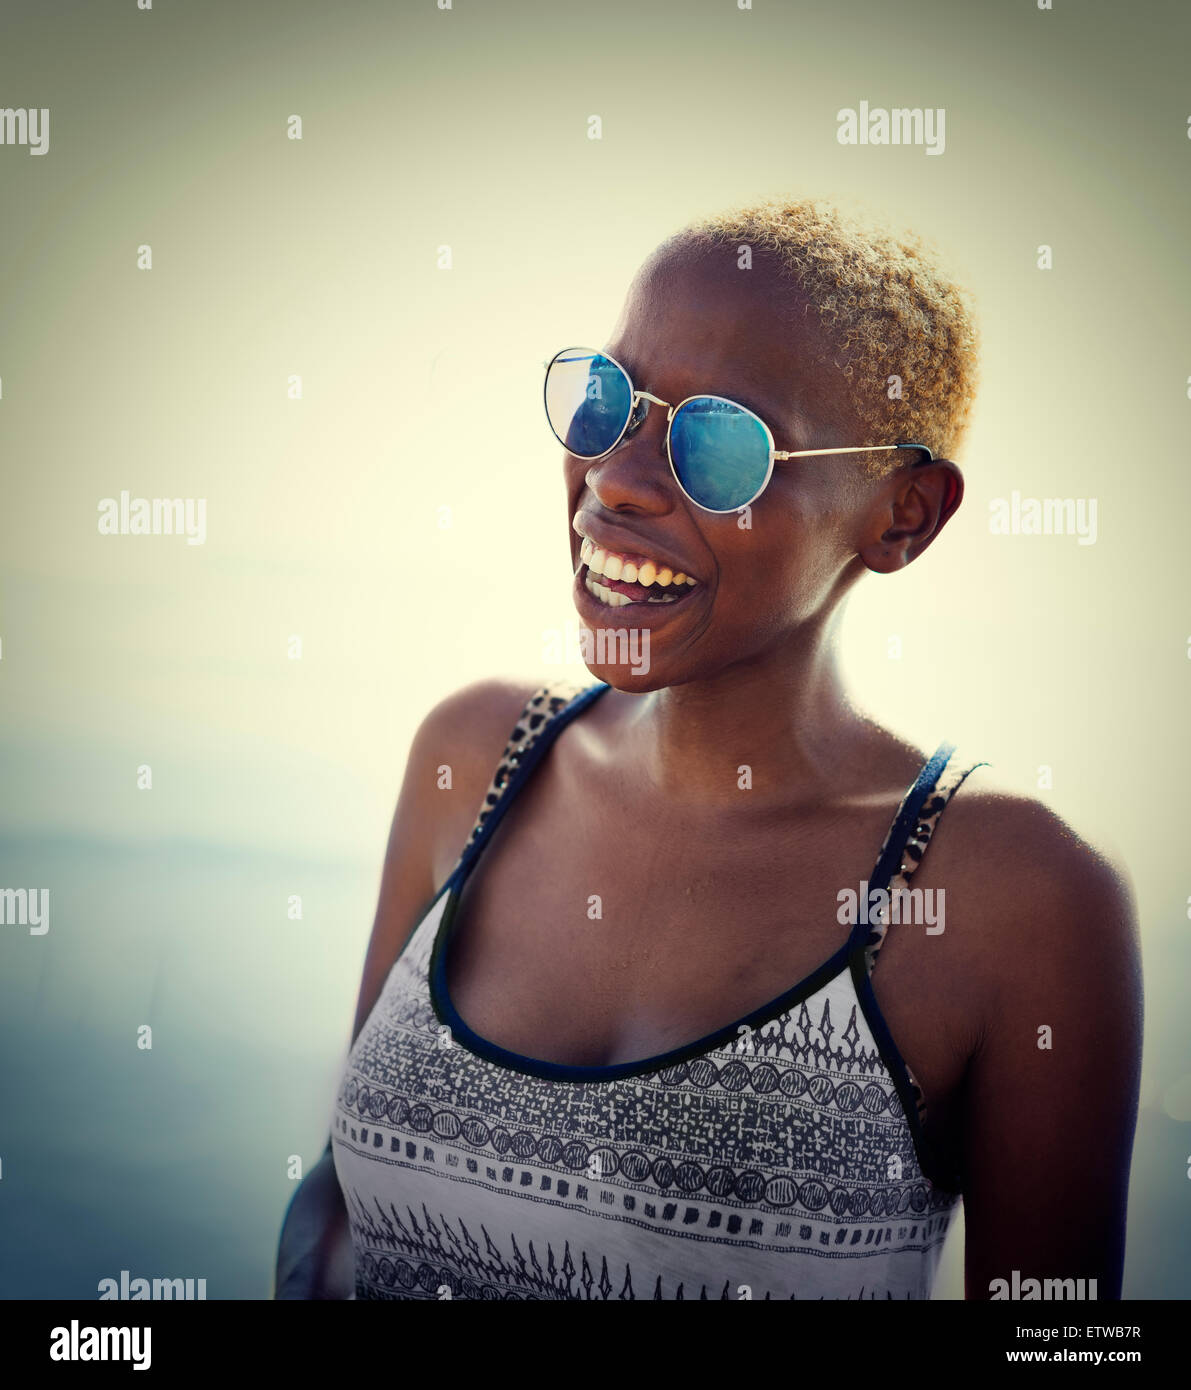 African Woman Lady été plage Smiling Concept Photo Stock